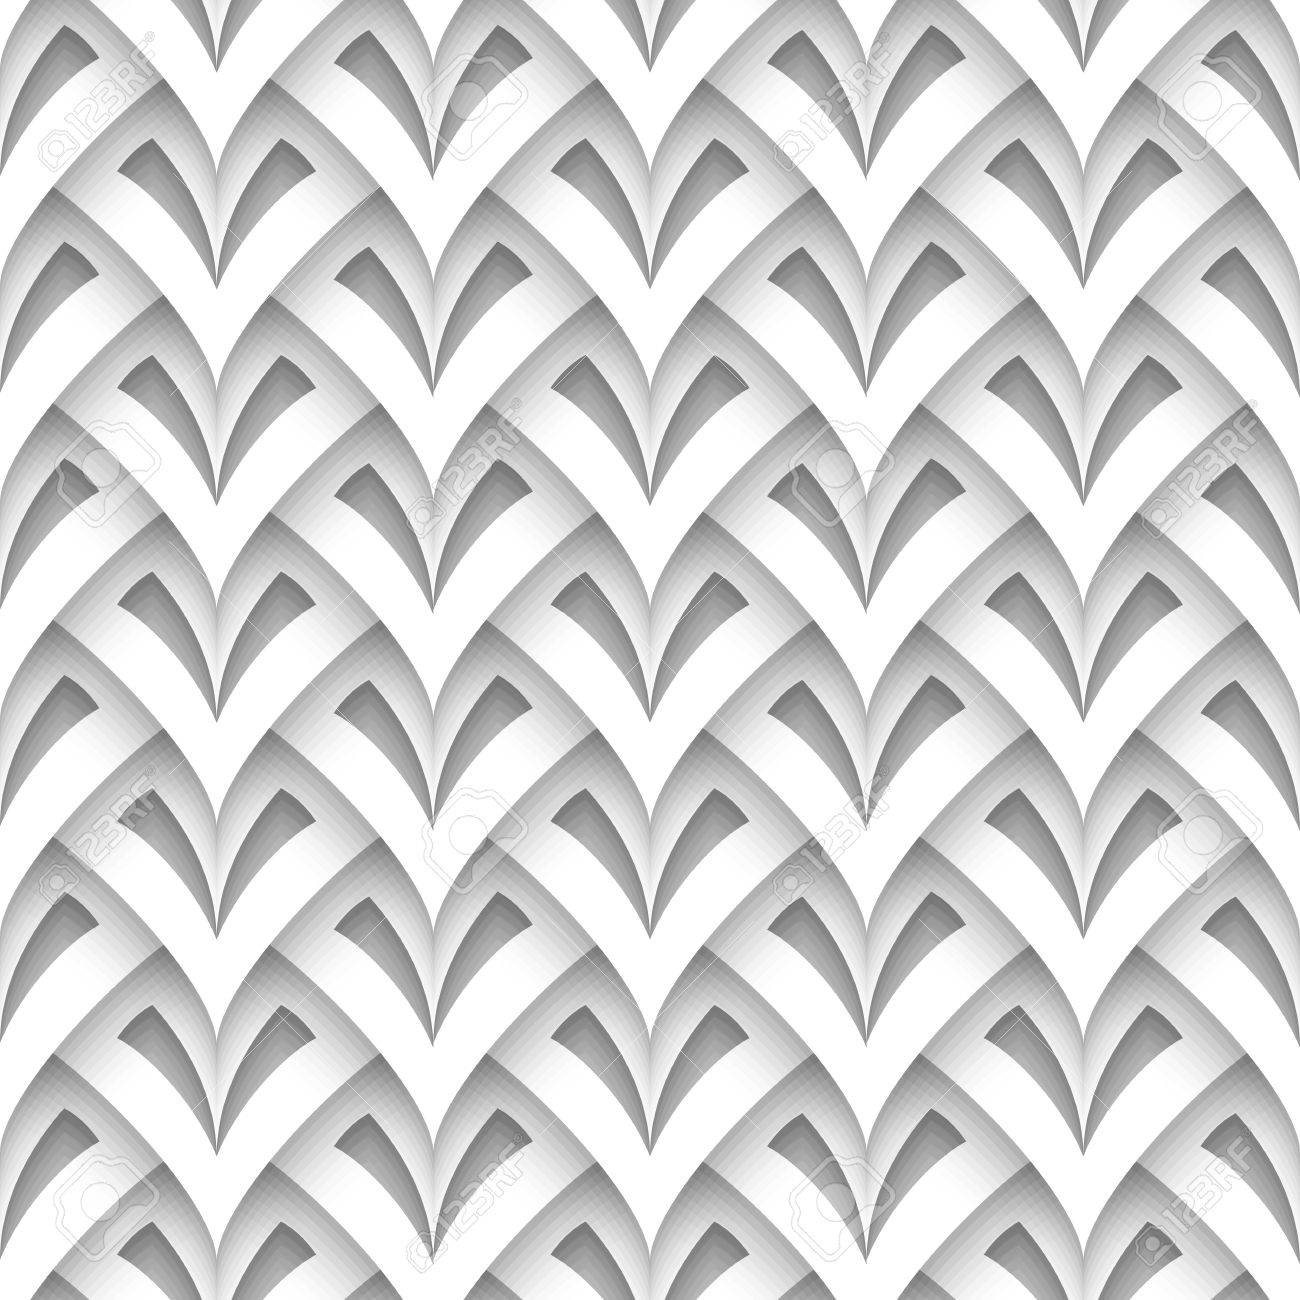 Cutout paper texture, abstract scaly geometric background, seamless pattern - 27453937